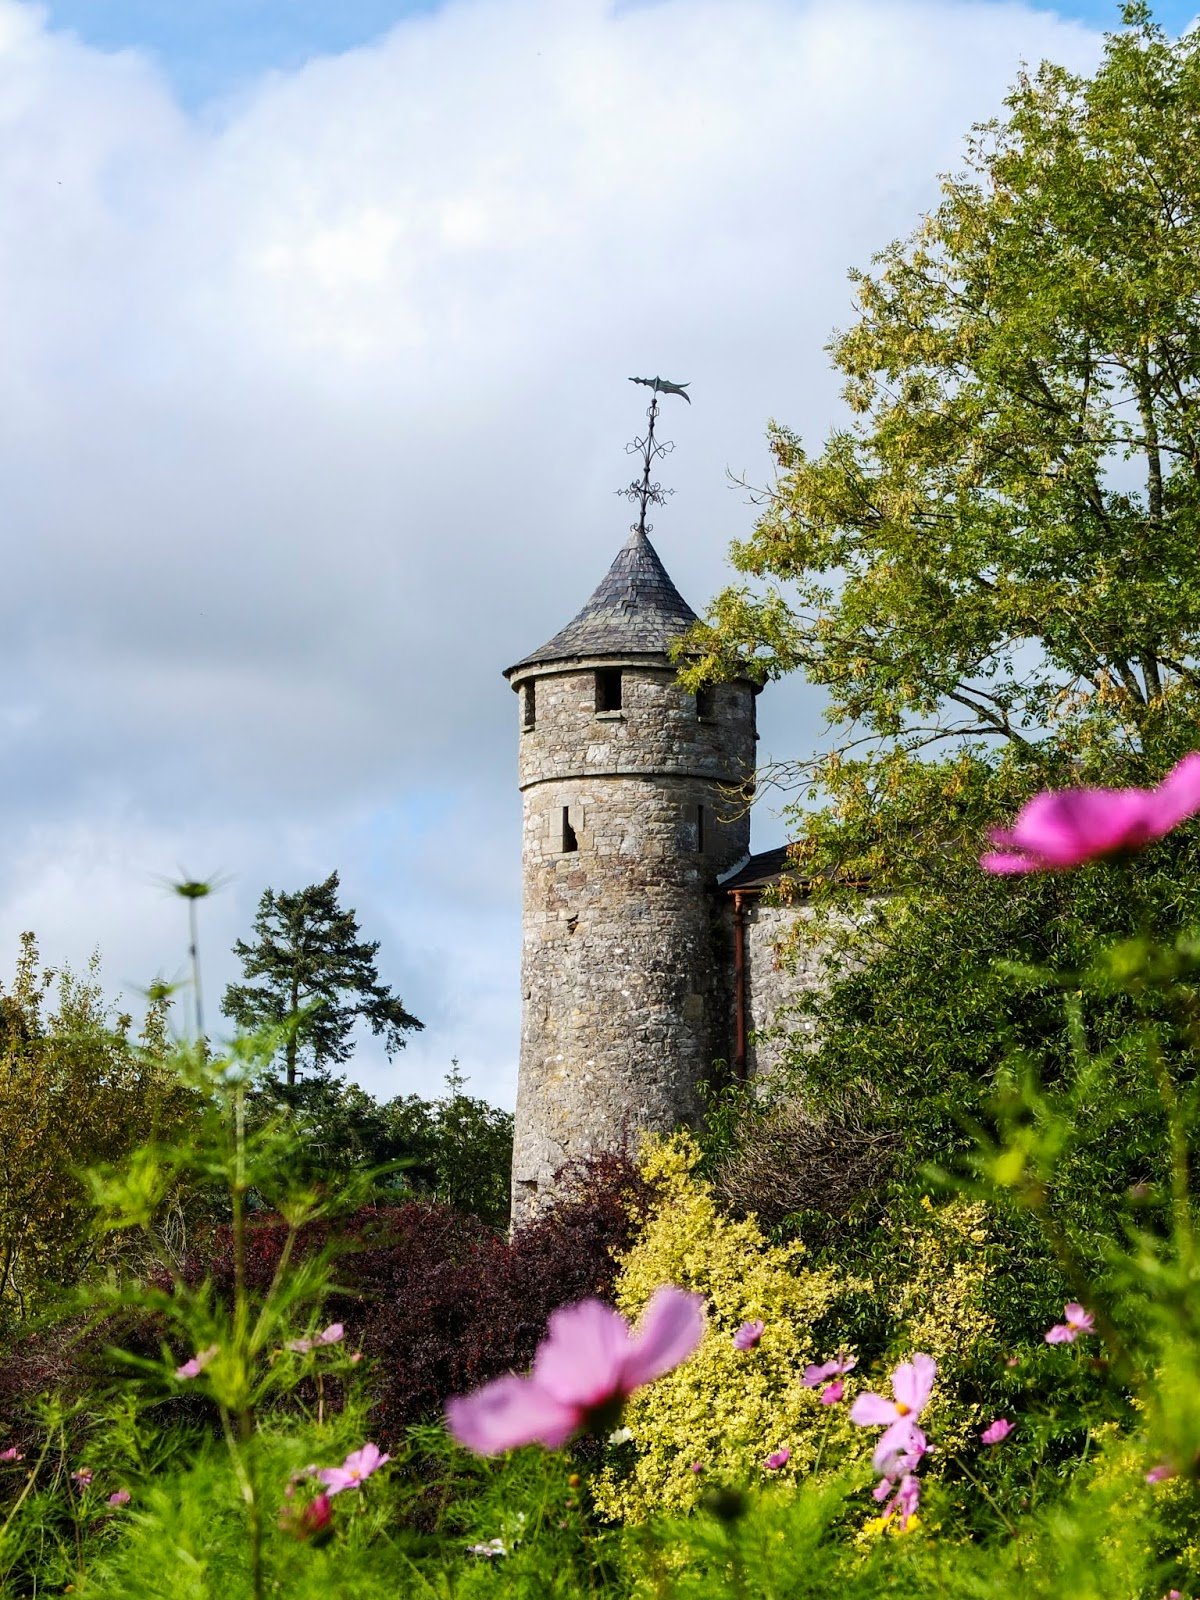 A stone corner tower of the Cahir Castle in Co.Tipperary with pink cosmos flowers in the foreground.